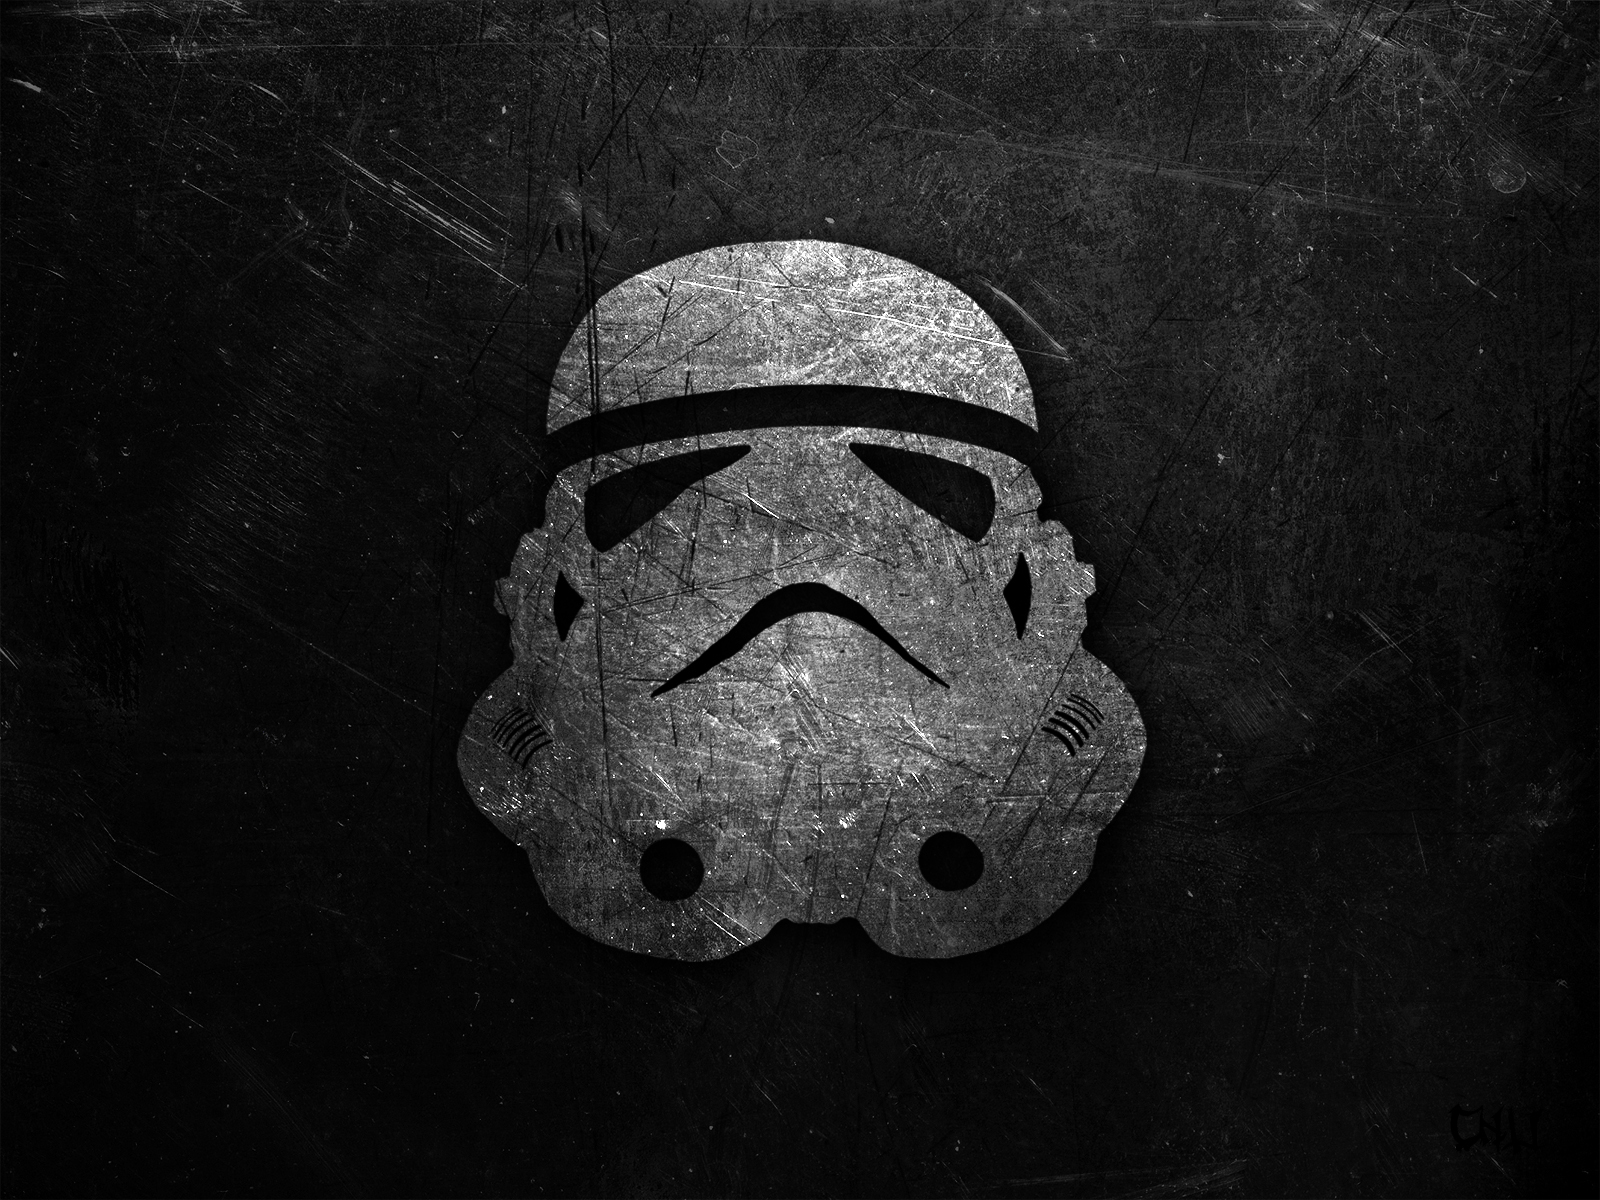 stormtrooper wallpaper star wars - photo #10